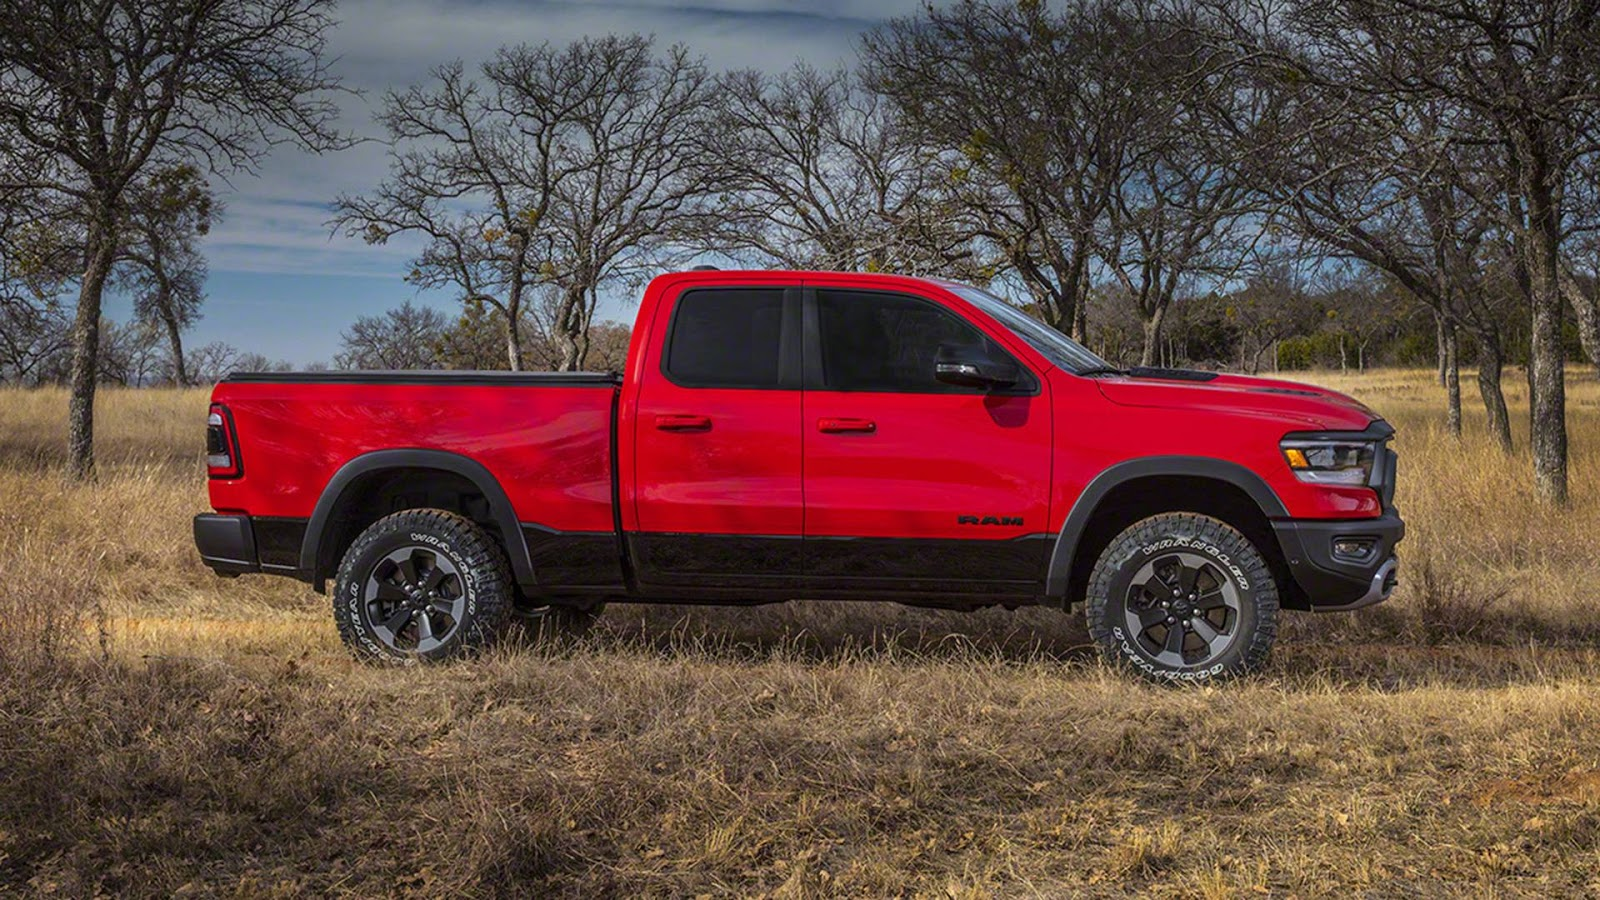 2019 Ram 1500 Easter Egg Is An Indicator For The 707-HP Ram Hellcat - autoevolution